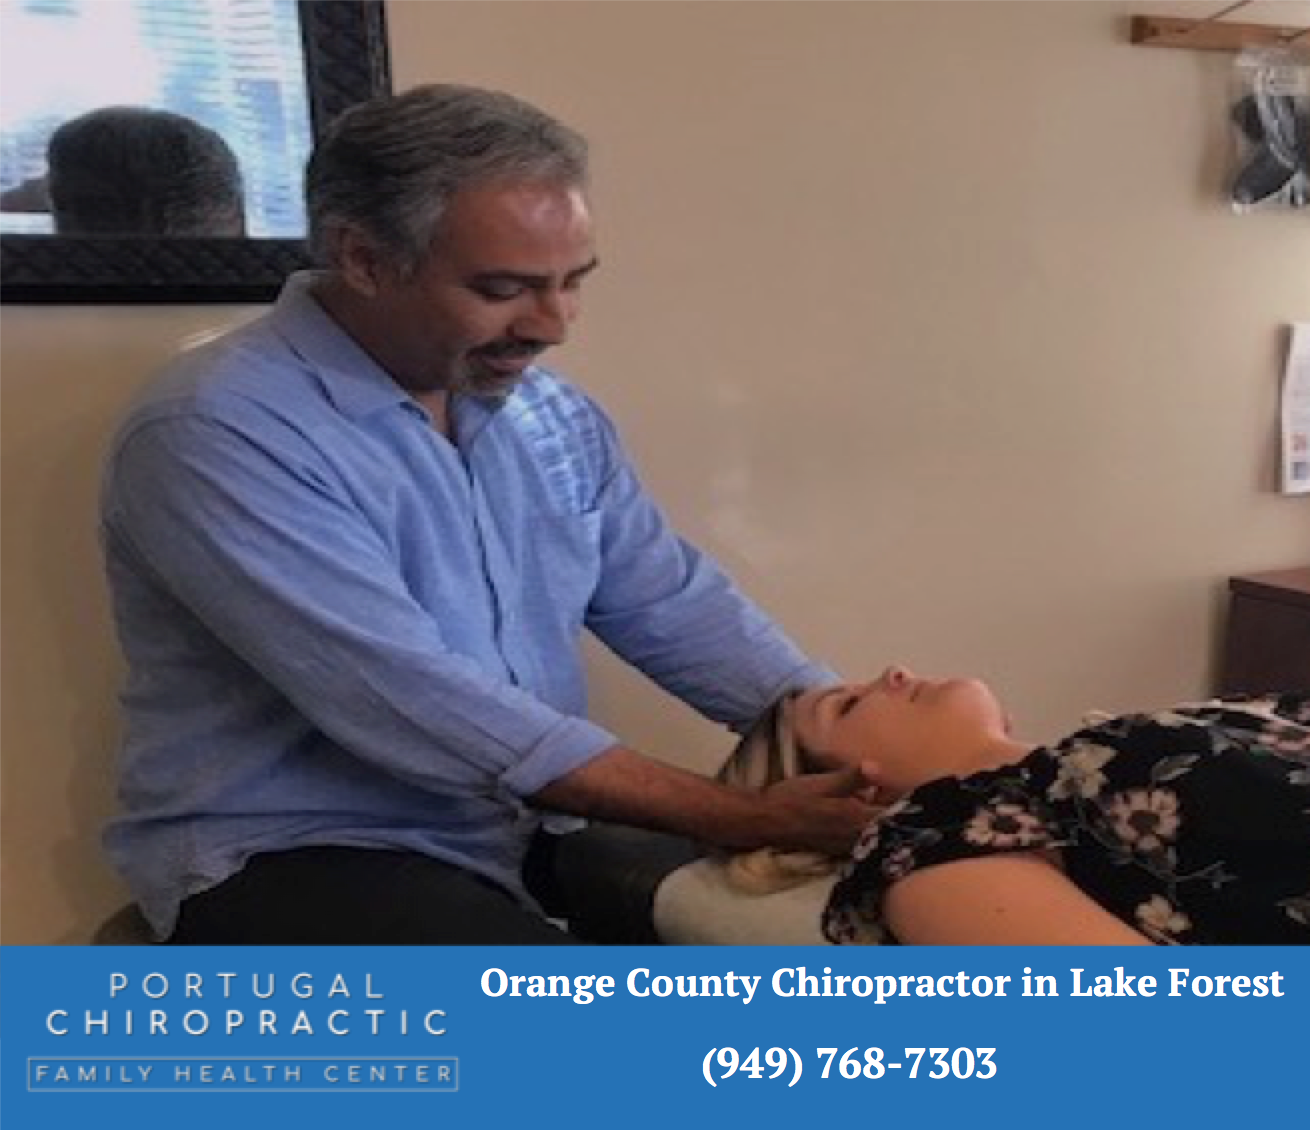 Orange County Chiropractor in Lake Forest - Portugal Chiropractic